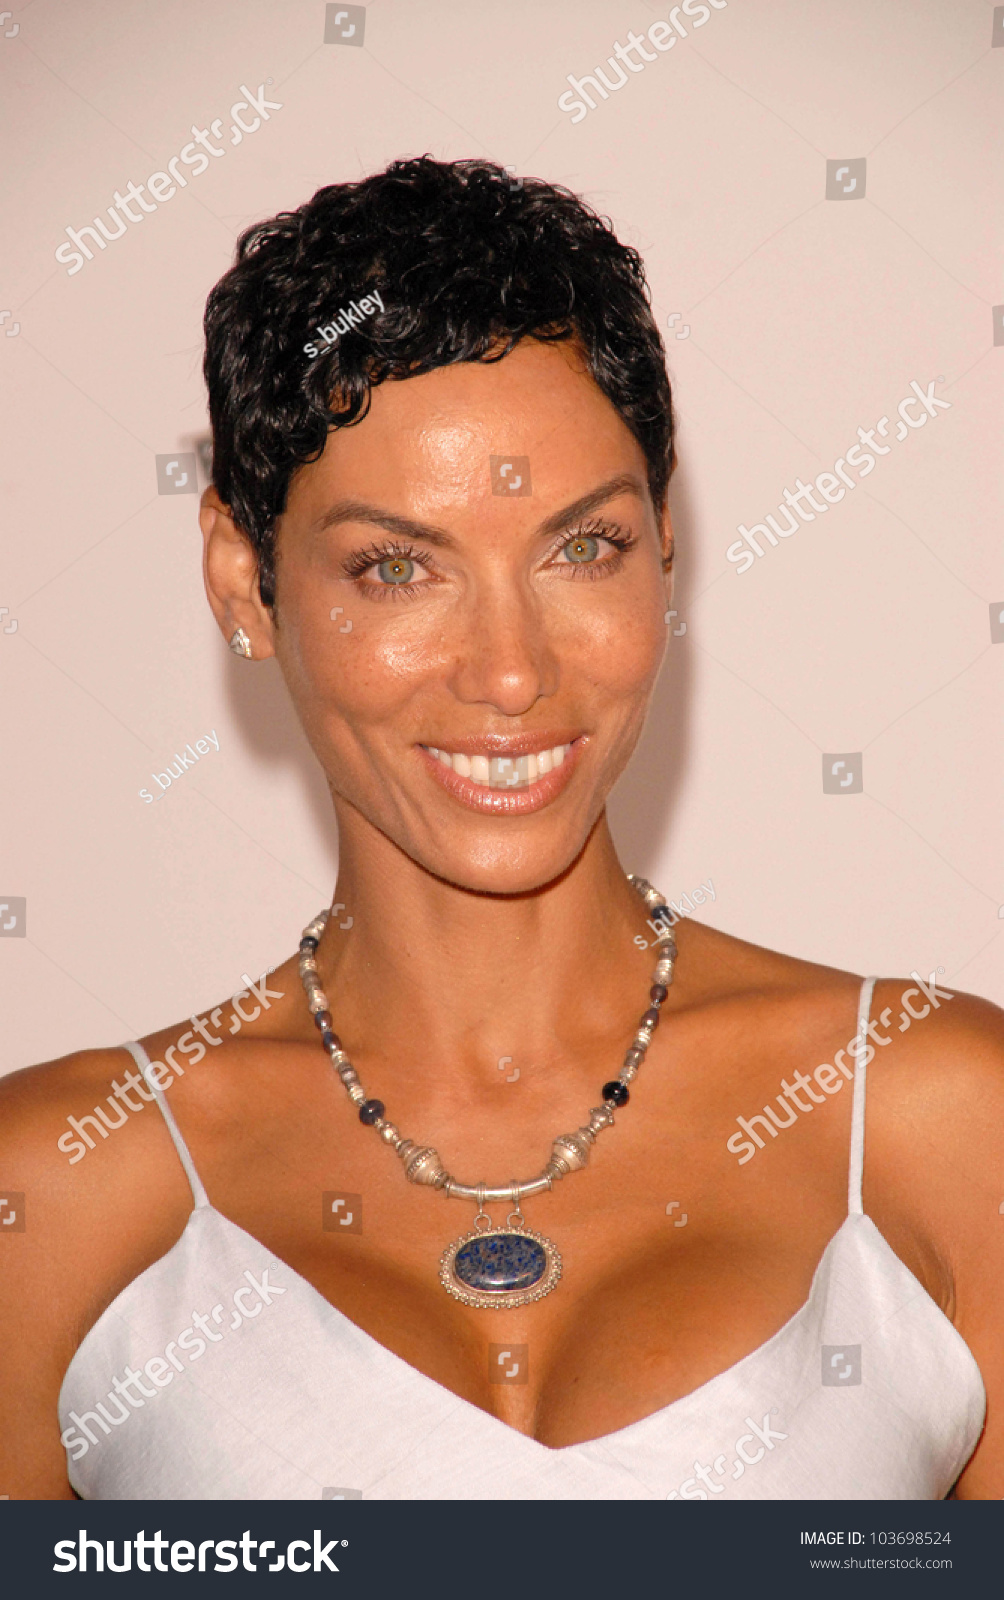 Nicole Mitchell Murphy naked (97 images) Selfie, Facebook, lingerie